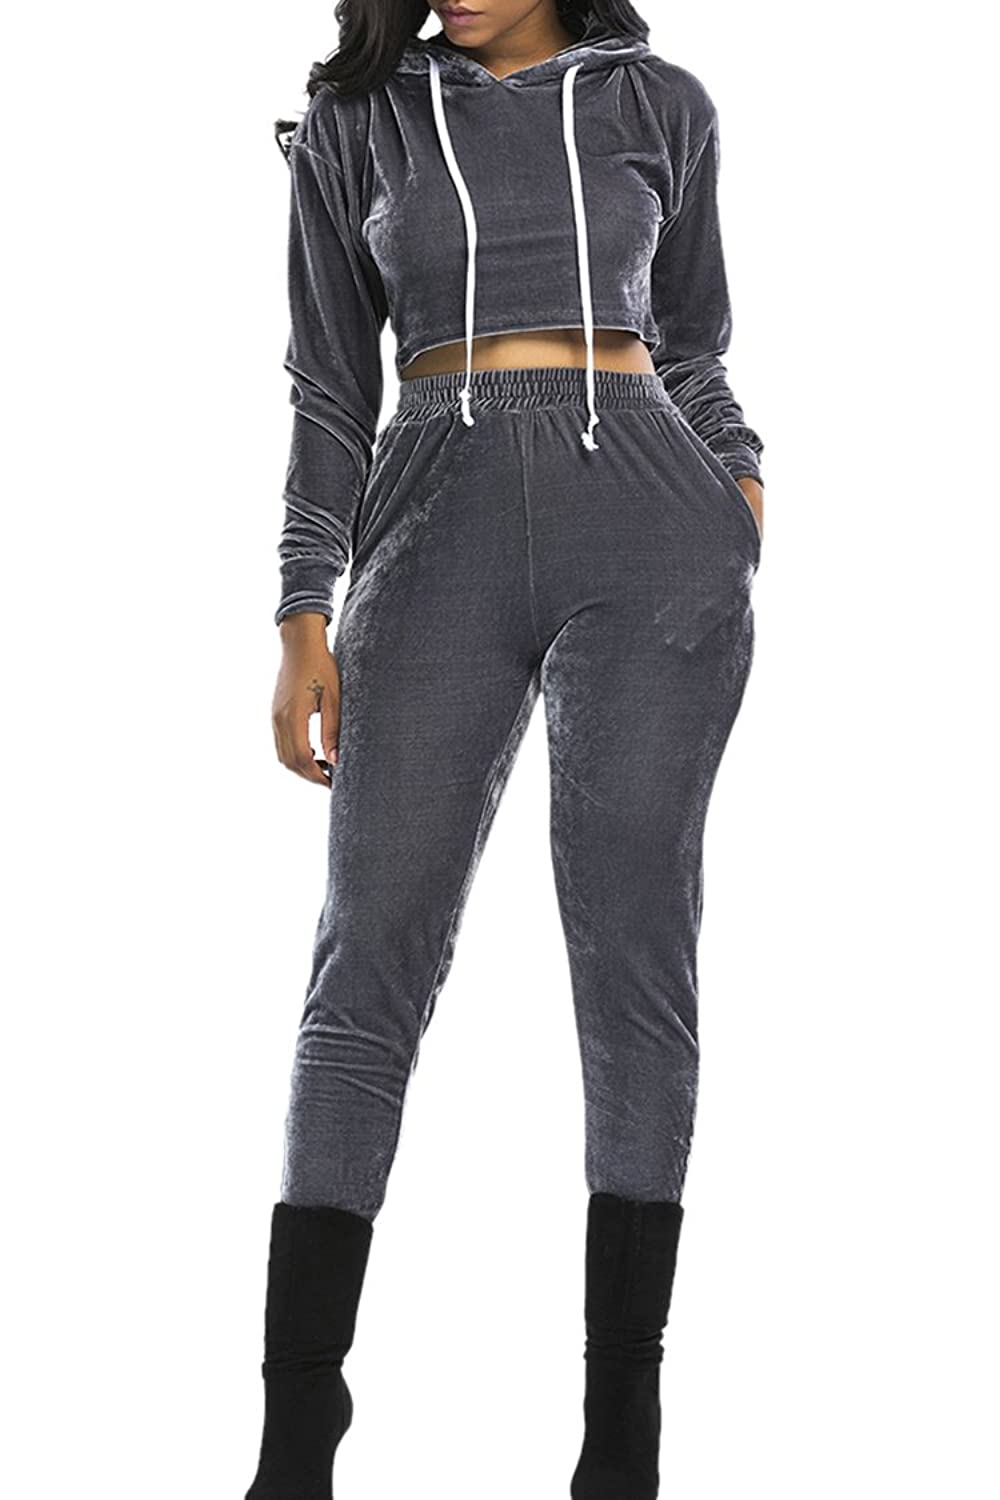 Linsery Women's 2 Piece Pleuche Long Sleeve Hooded Crop Top Pants Set Tracksuit